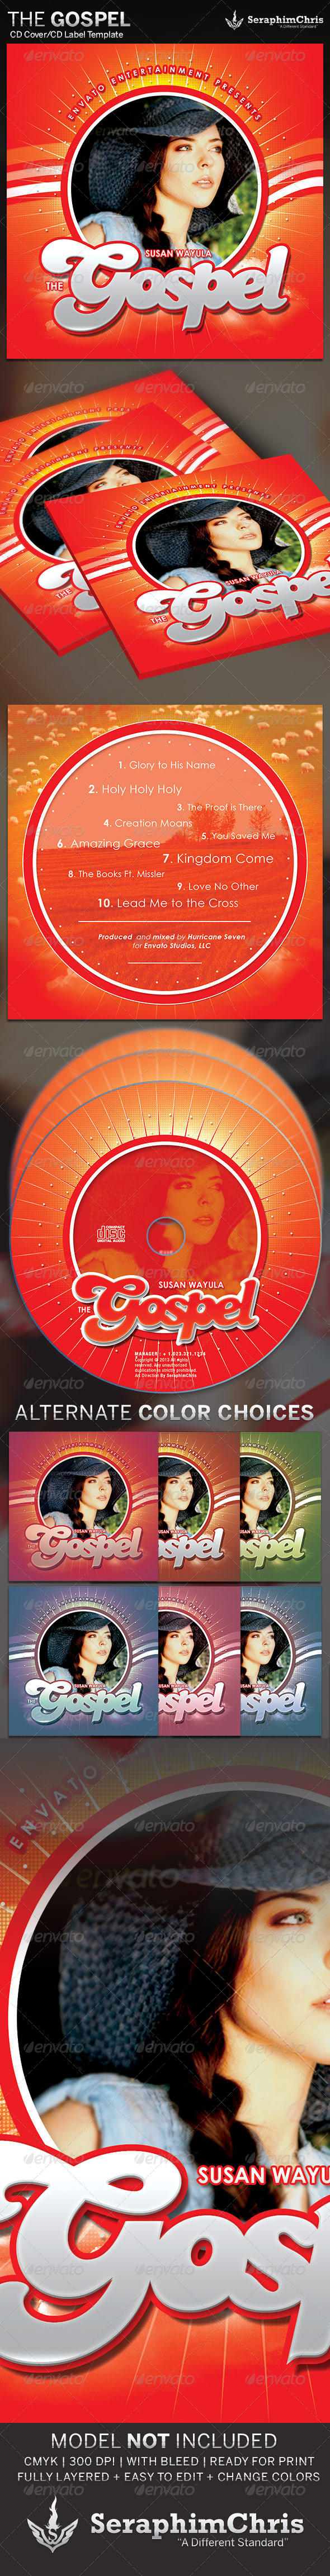 GraphicRiver The Gospel CD Cover Artwork Template 4506501